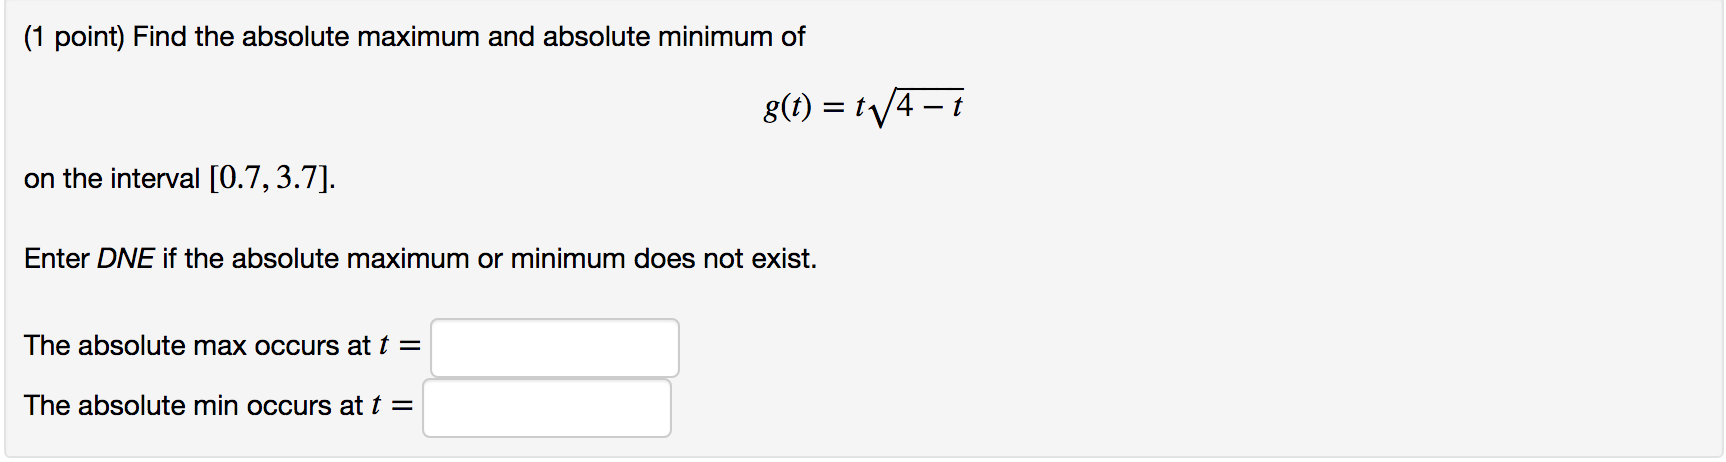 (1 point) Find the absolute maximum and absolute minimum of g() t4-i on the interval [0.7,3.7] Enter DNE if the absolute maximum or minimum does not exist. The absolute max occurs at t = The absolute min occurs at t =